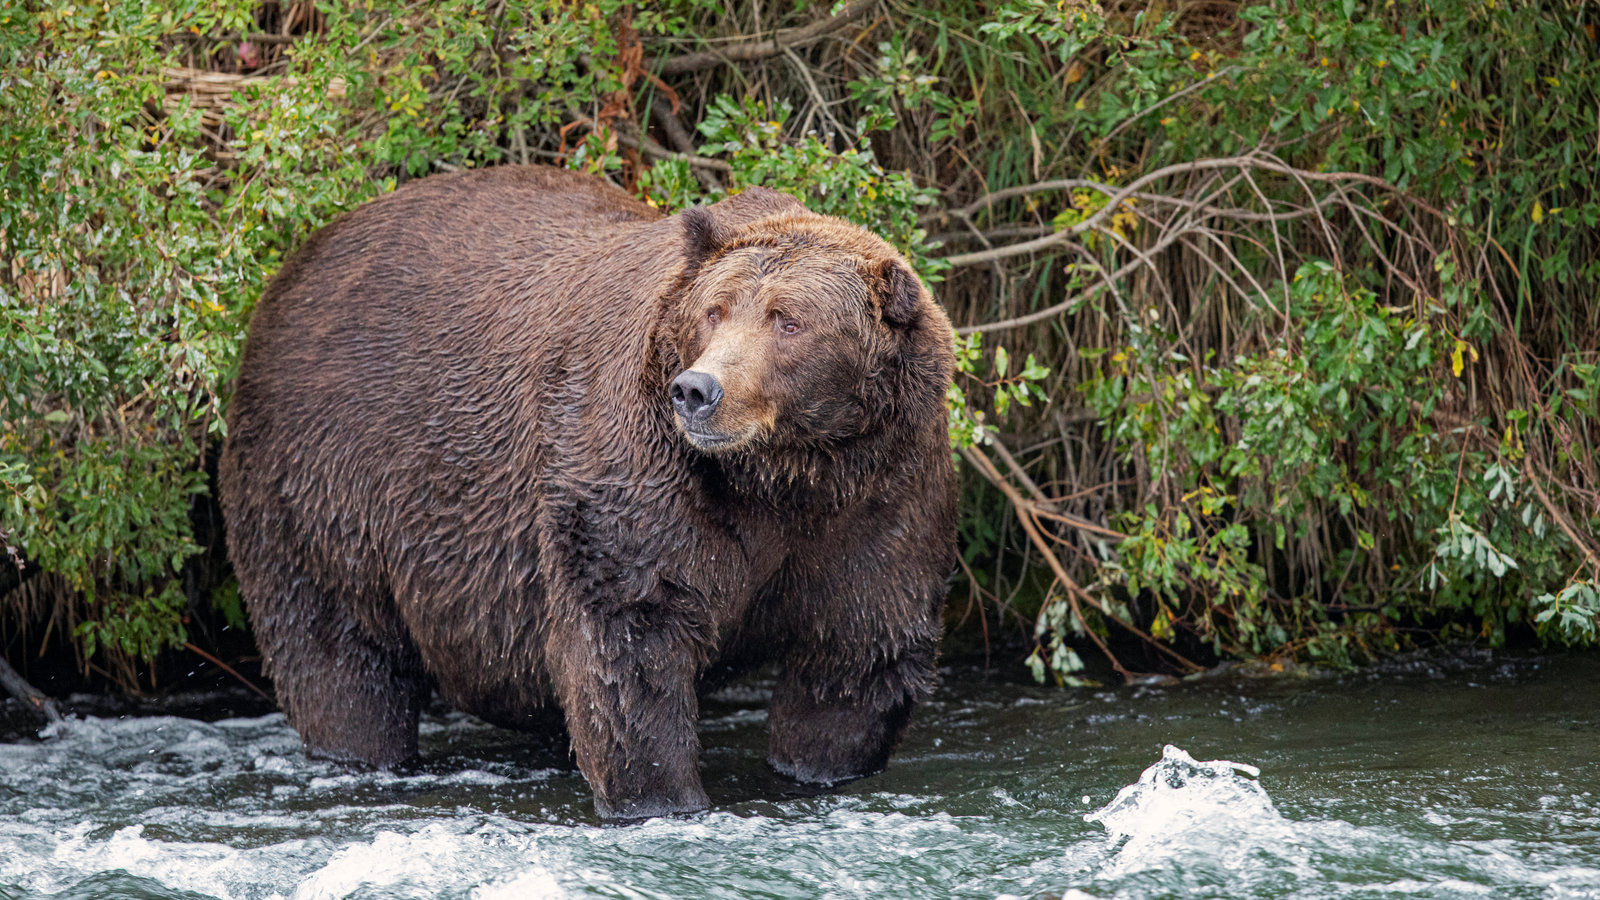 Hibernation Works For Bears Could It Work For Us Too